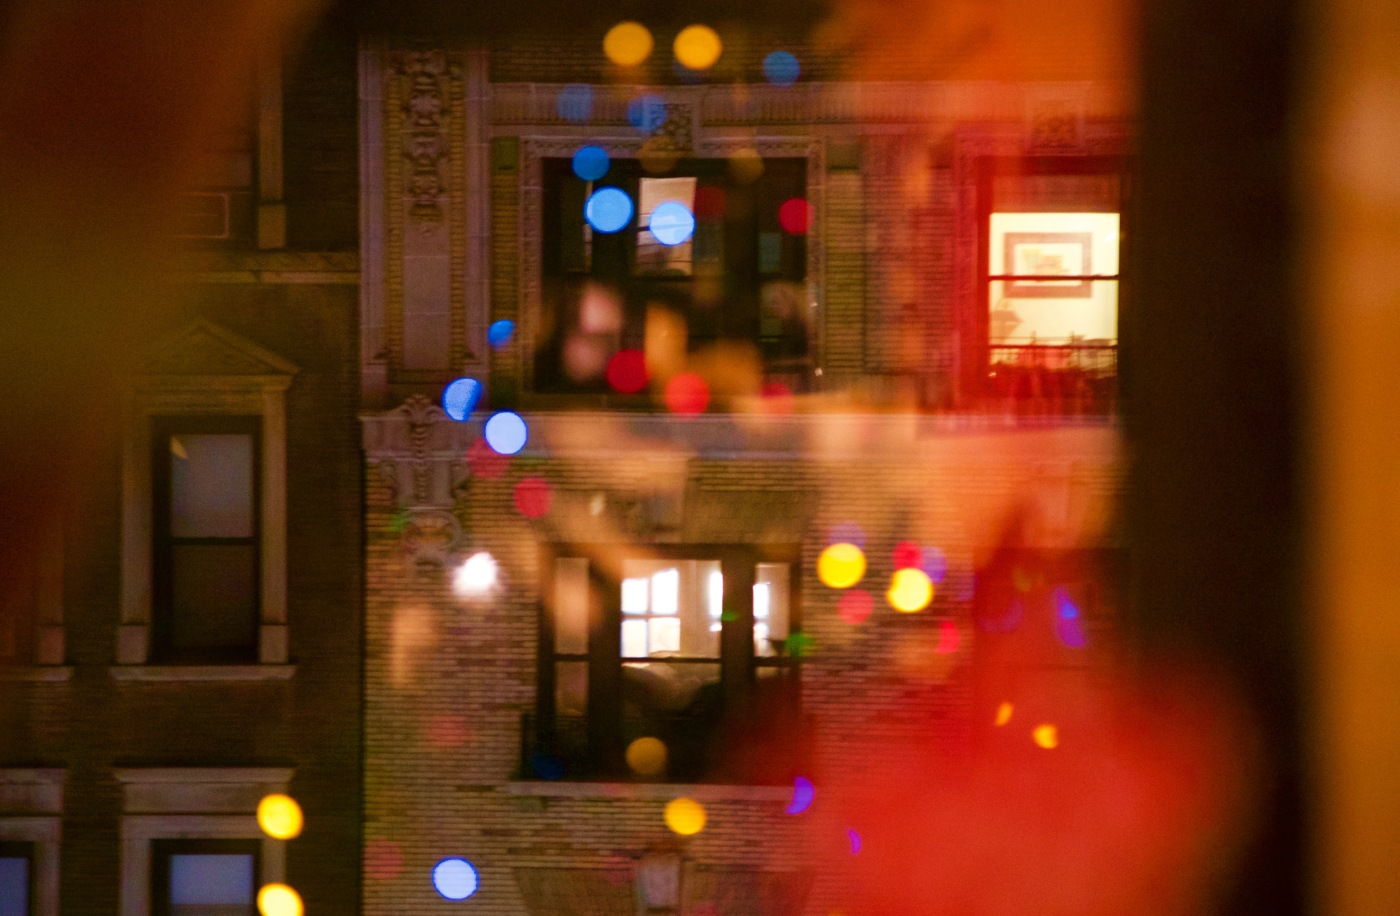 Day 5/6 christmas lights in window